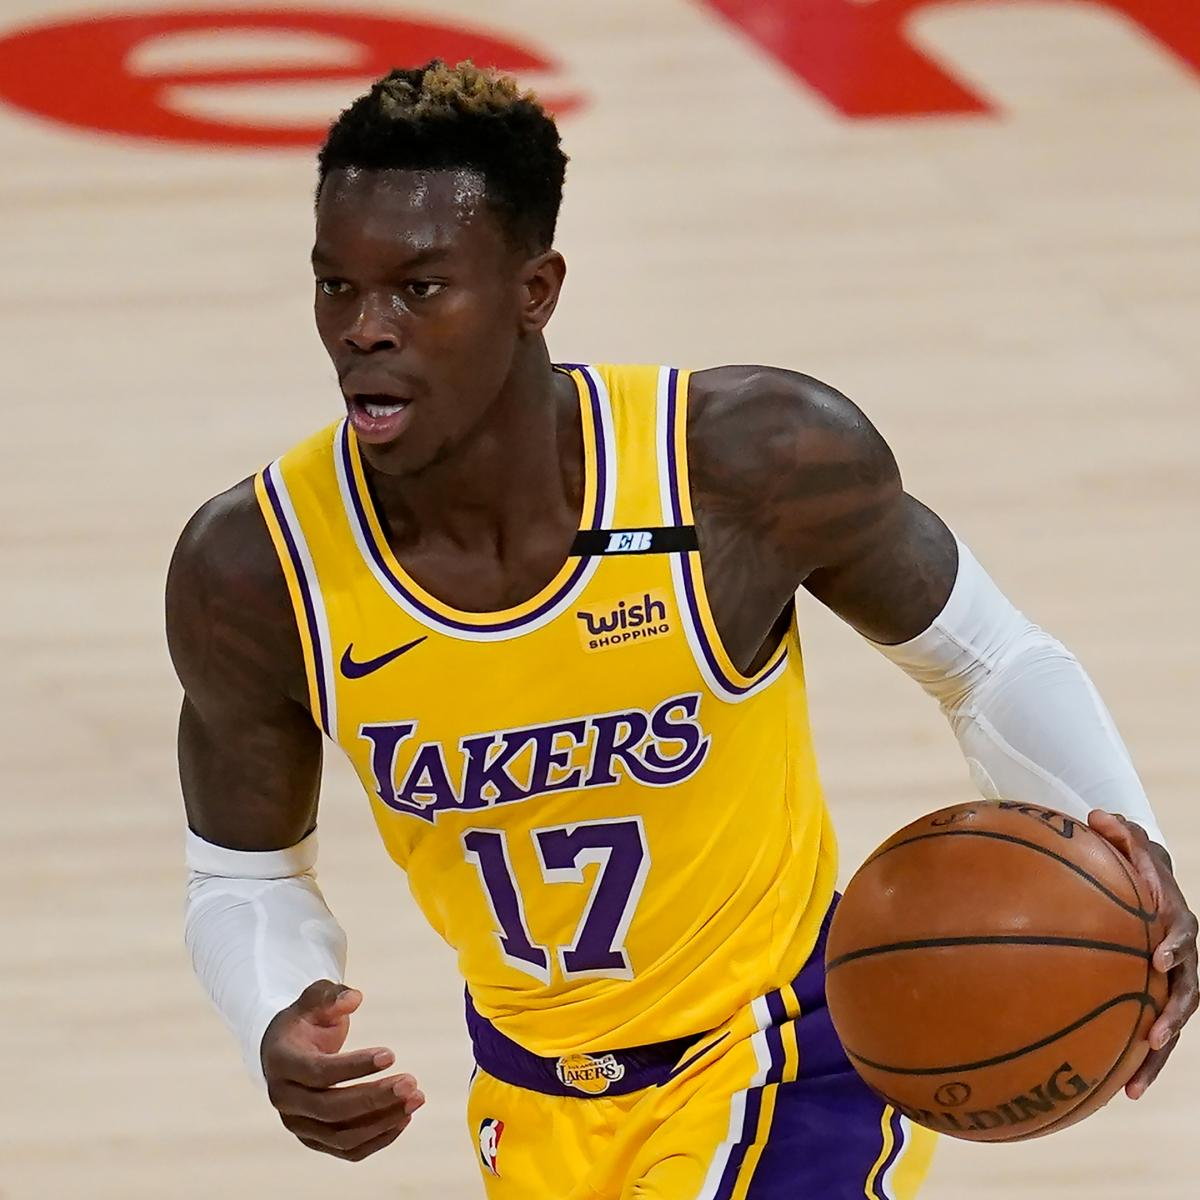 Knicks Rumors: Lakers' Dennis Schroder to Be Among NYK's Free-Agent Targets